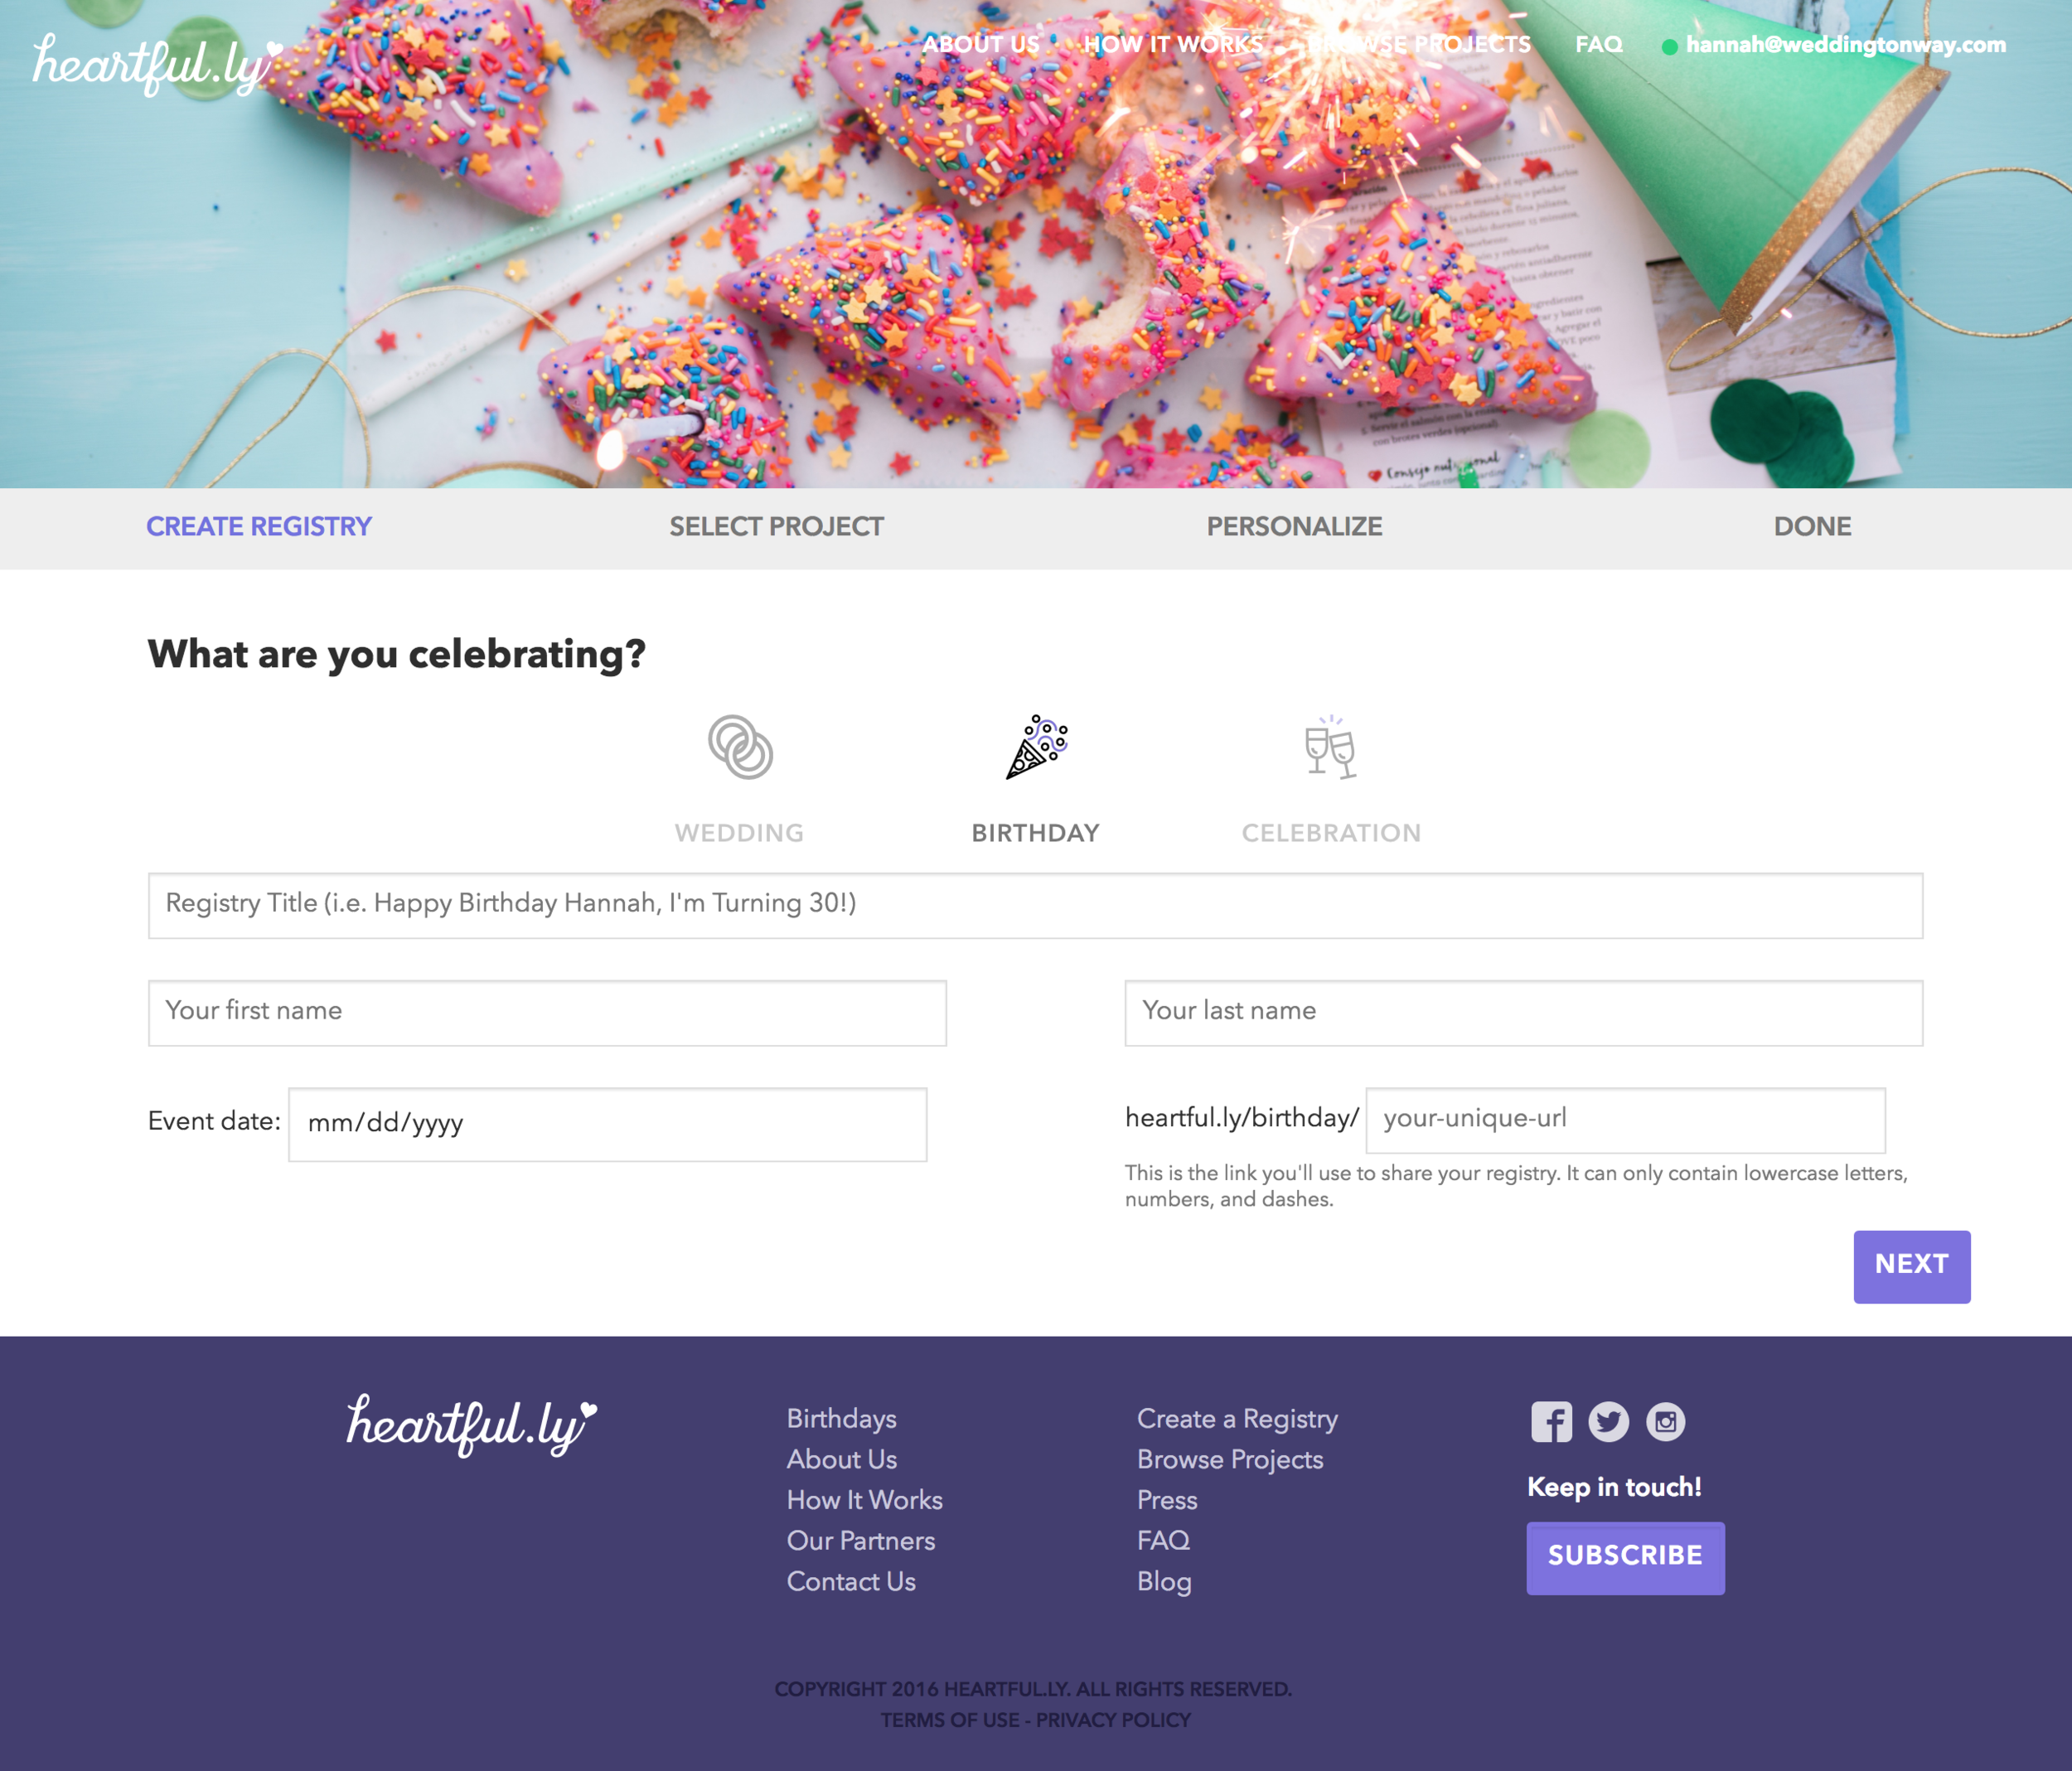 screencapture-heartful-ly-registries-new-1498536873780.png